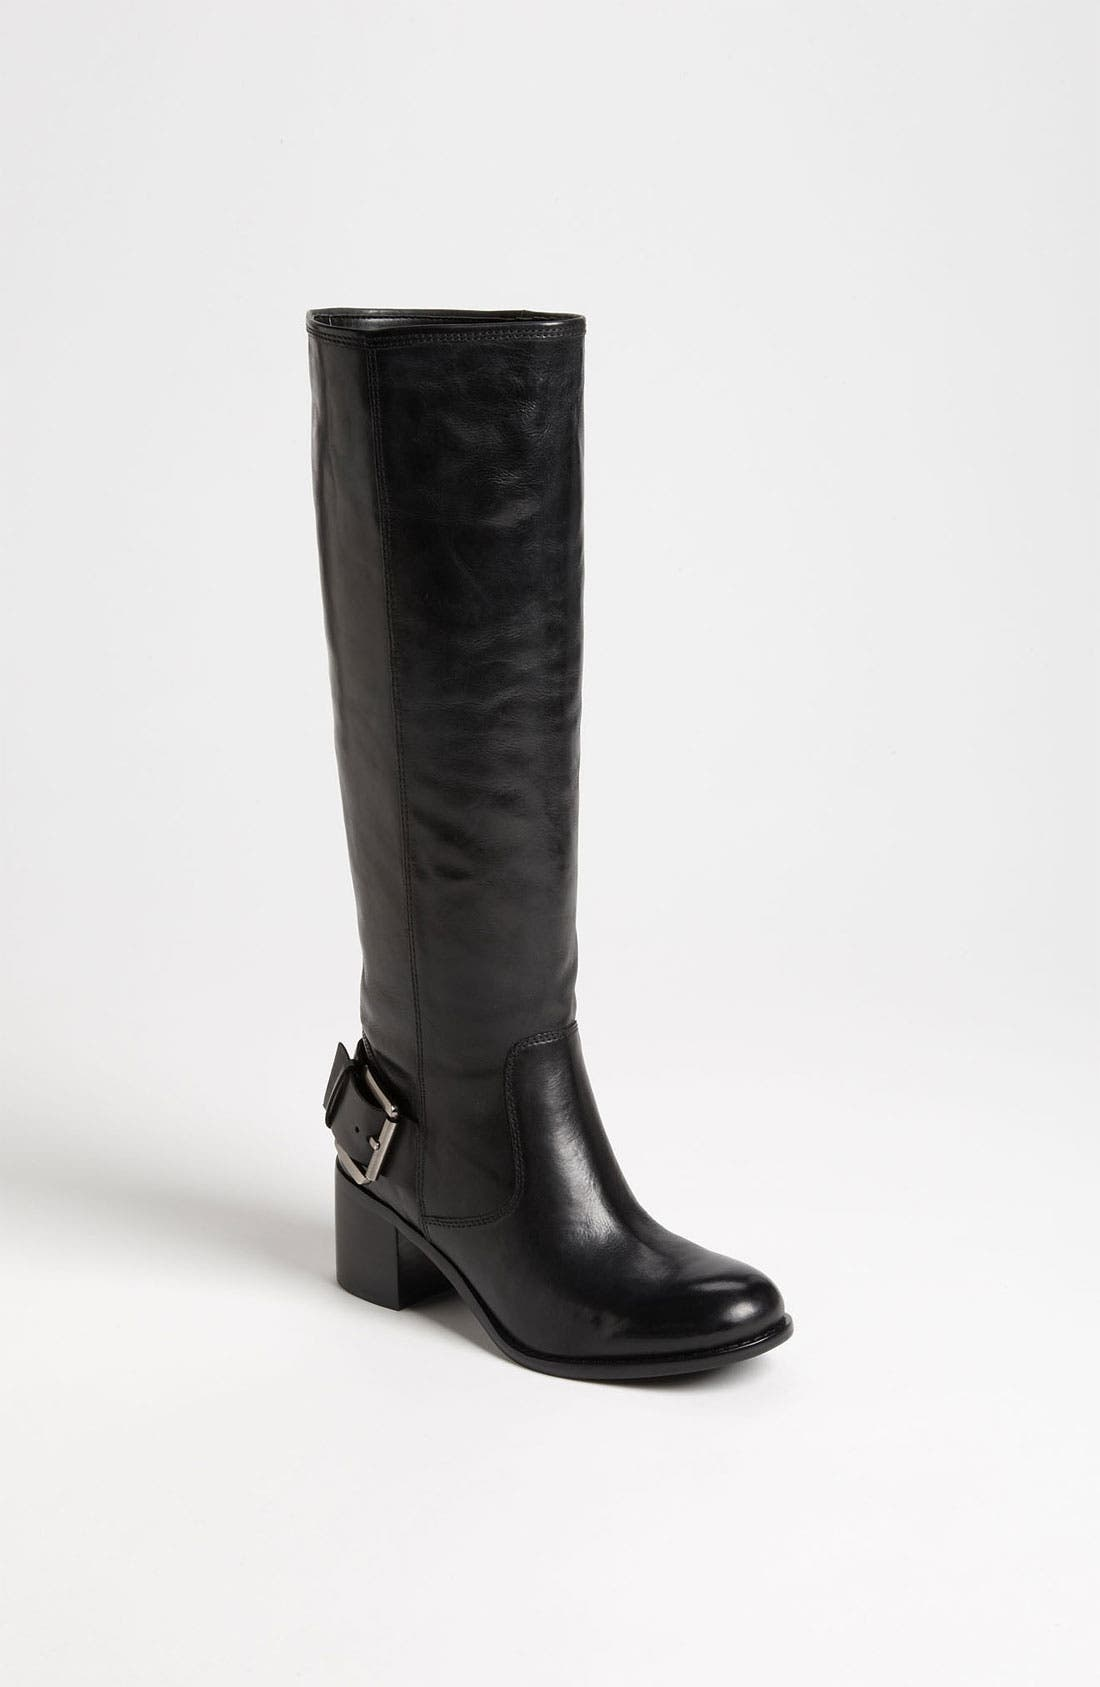 Main Image - Boutique 9 'Biondello' Boot